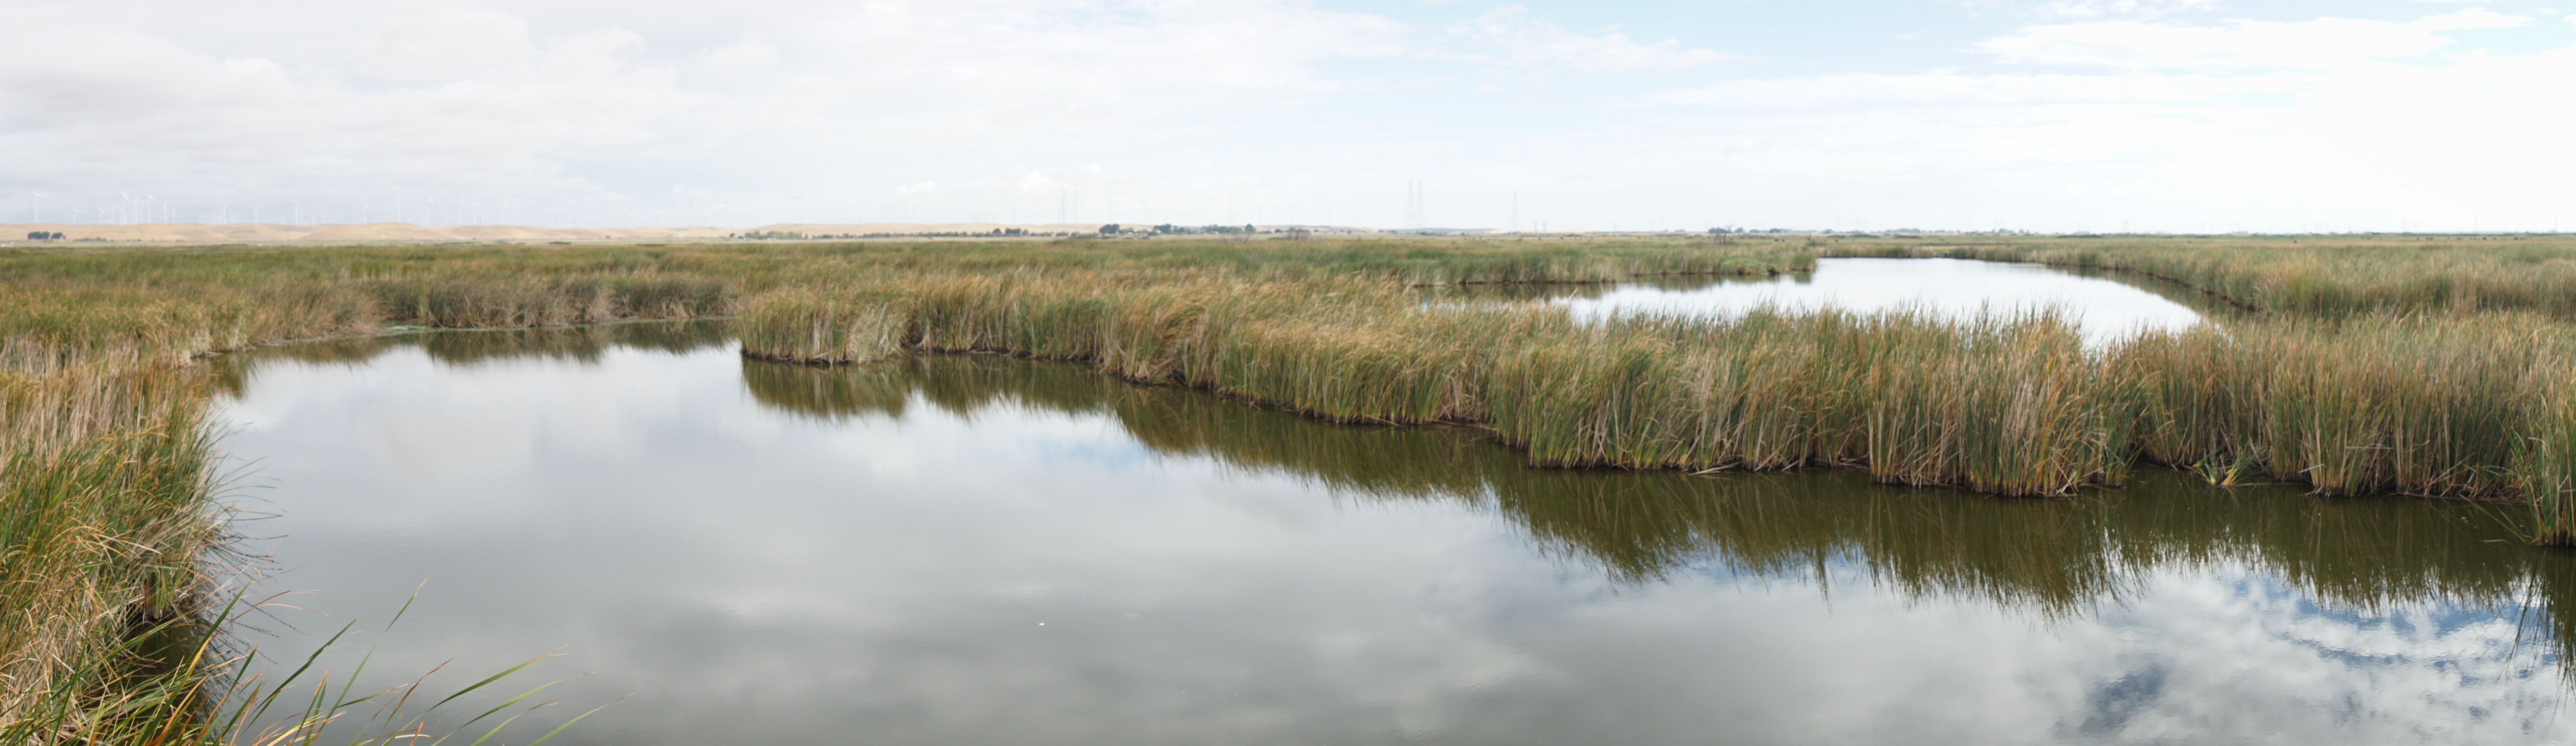 Restored wetlands in the Sacramento-San Joaquin Delta could help reduce greenhouse gas emissions compared to current land uses, and could also have a local cooling effect. Credit: Kyle Hemes